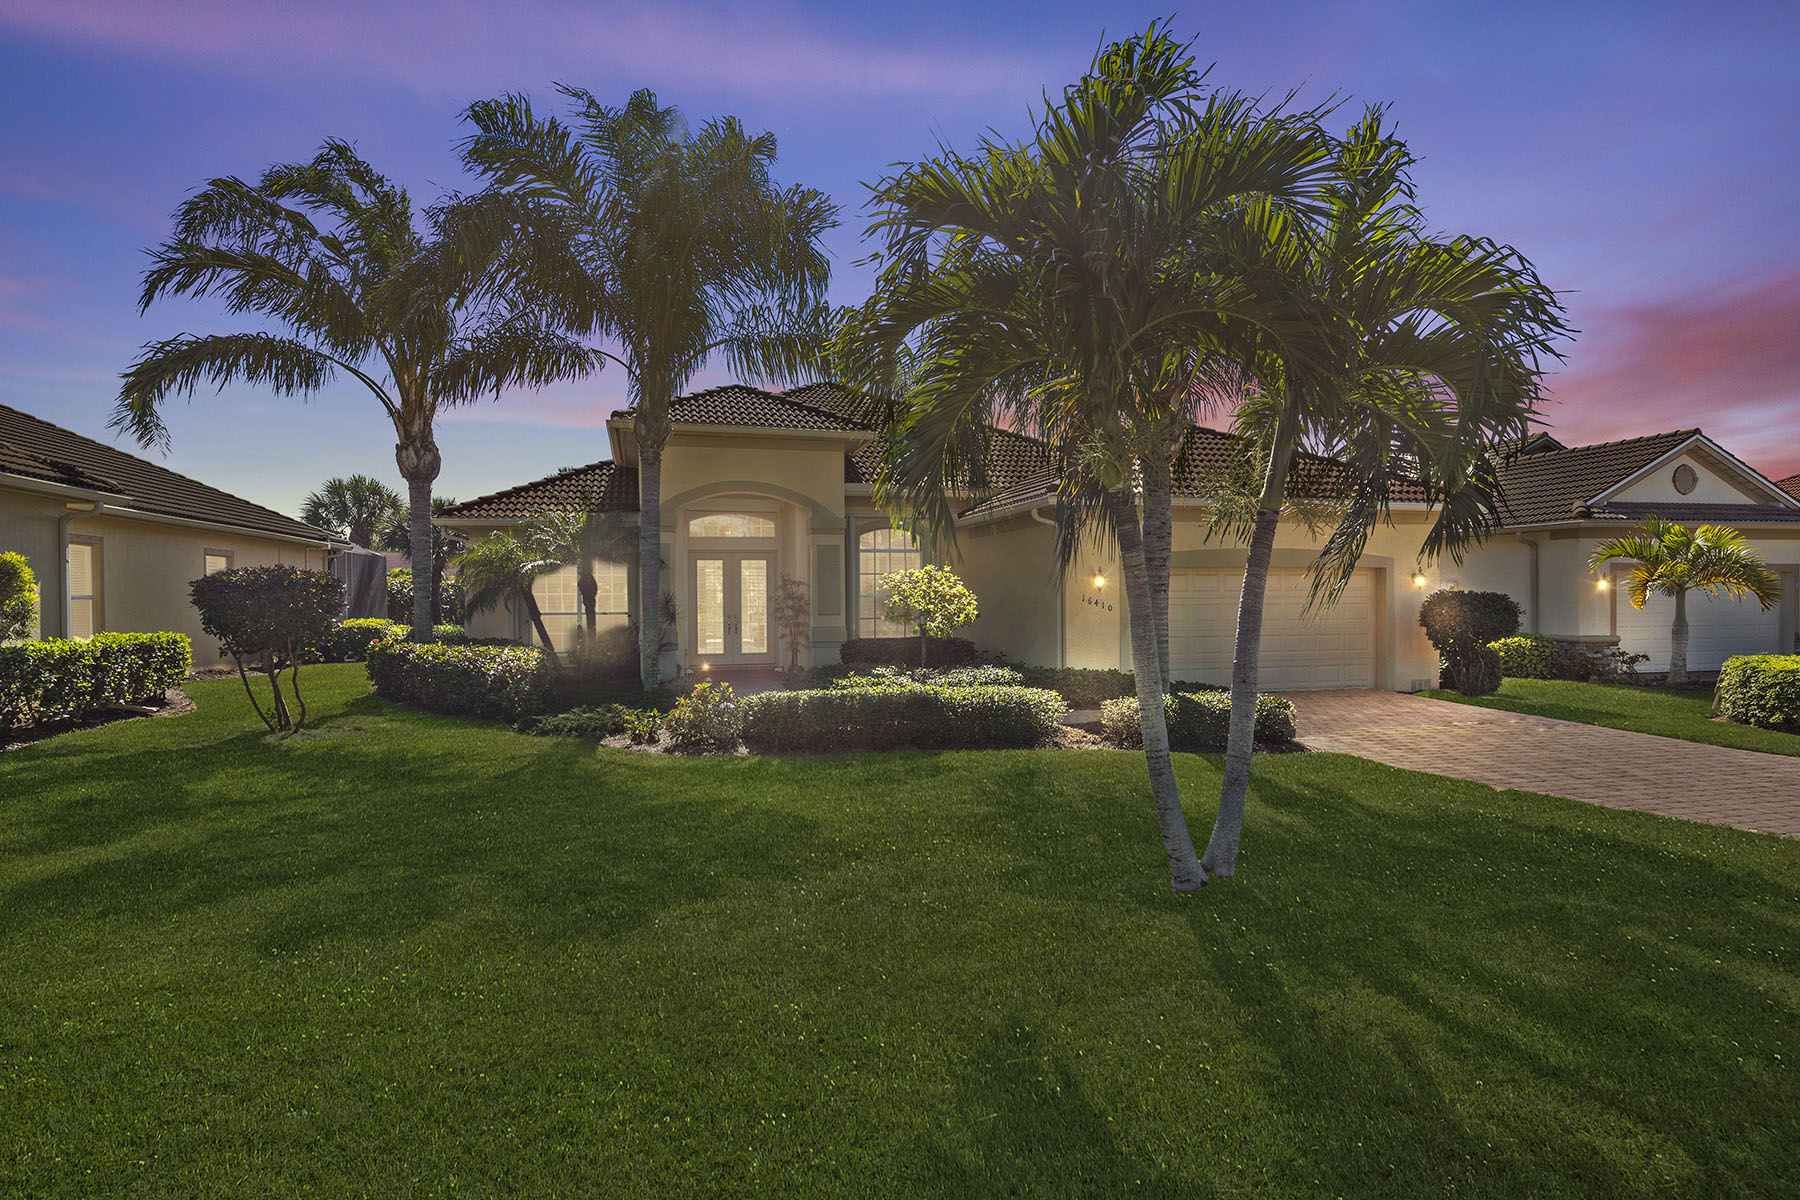 Single Family Homes for Sale at COCO BAY 16410 Coco Hammock Way, Fort Myers, Florida 33908 United States